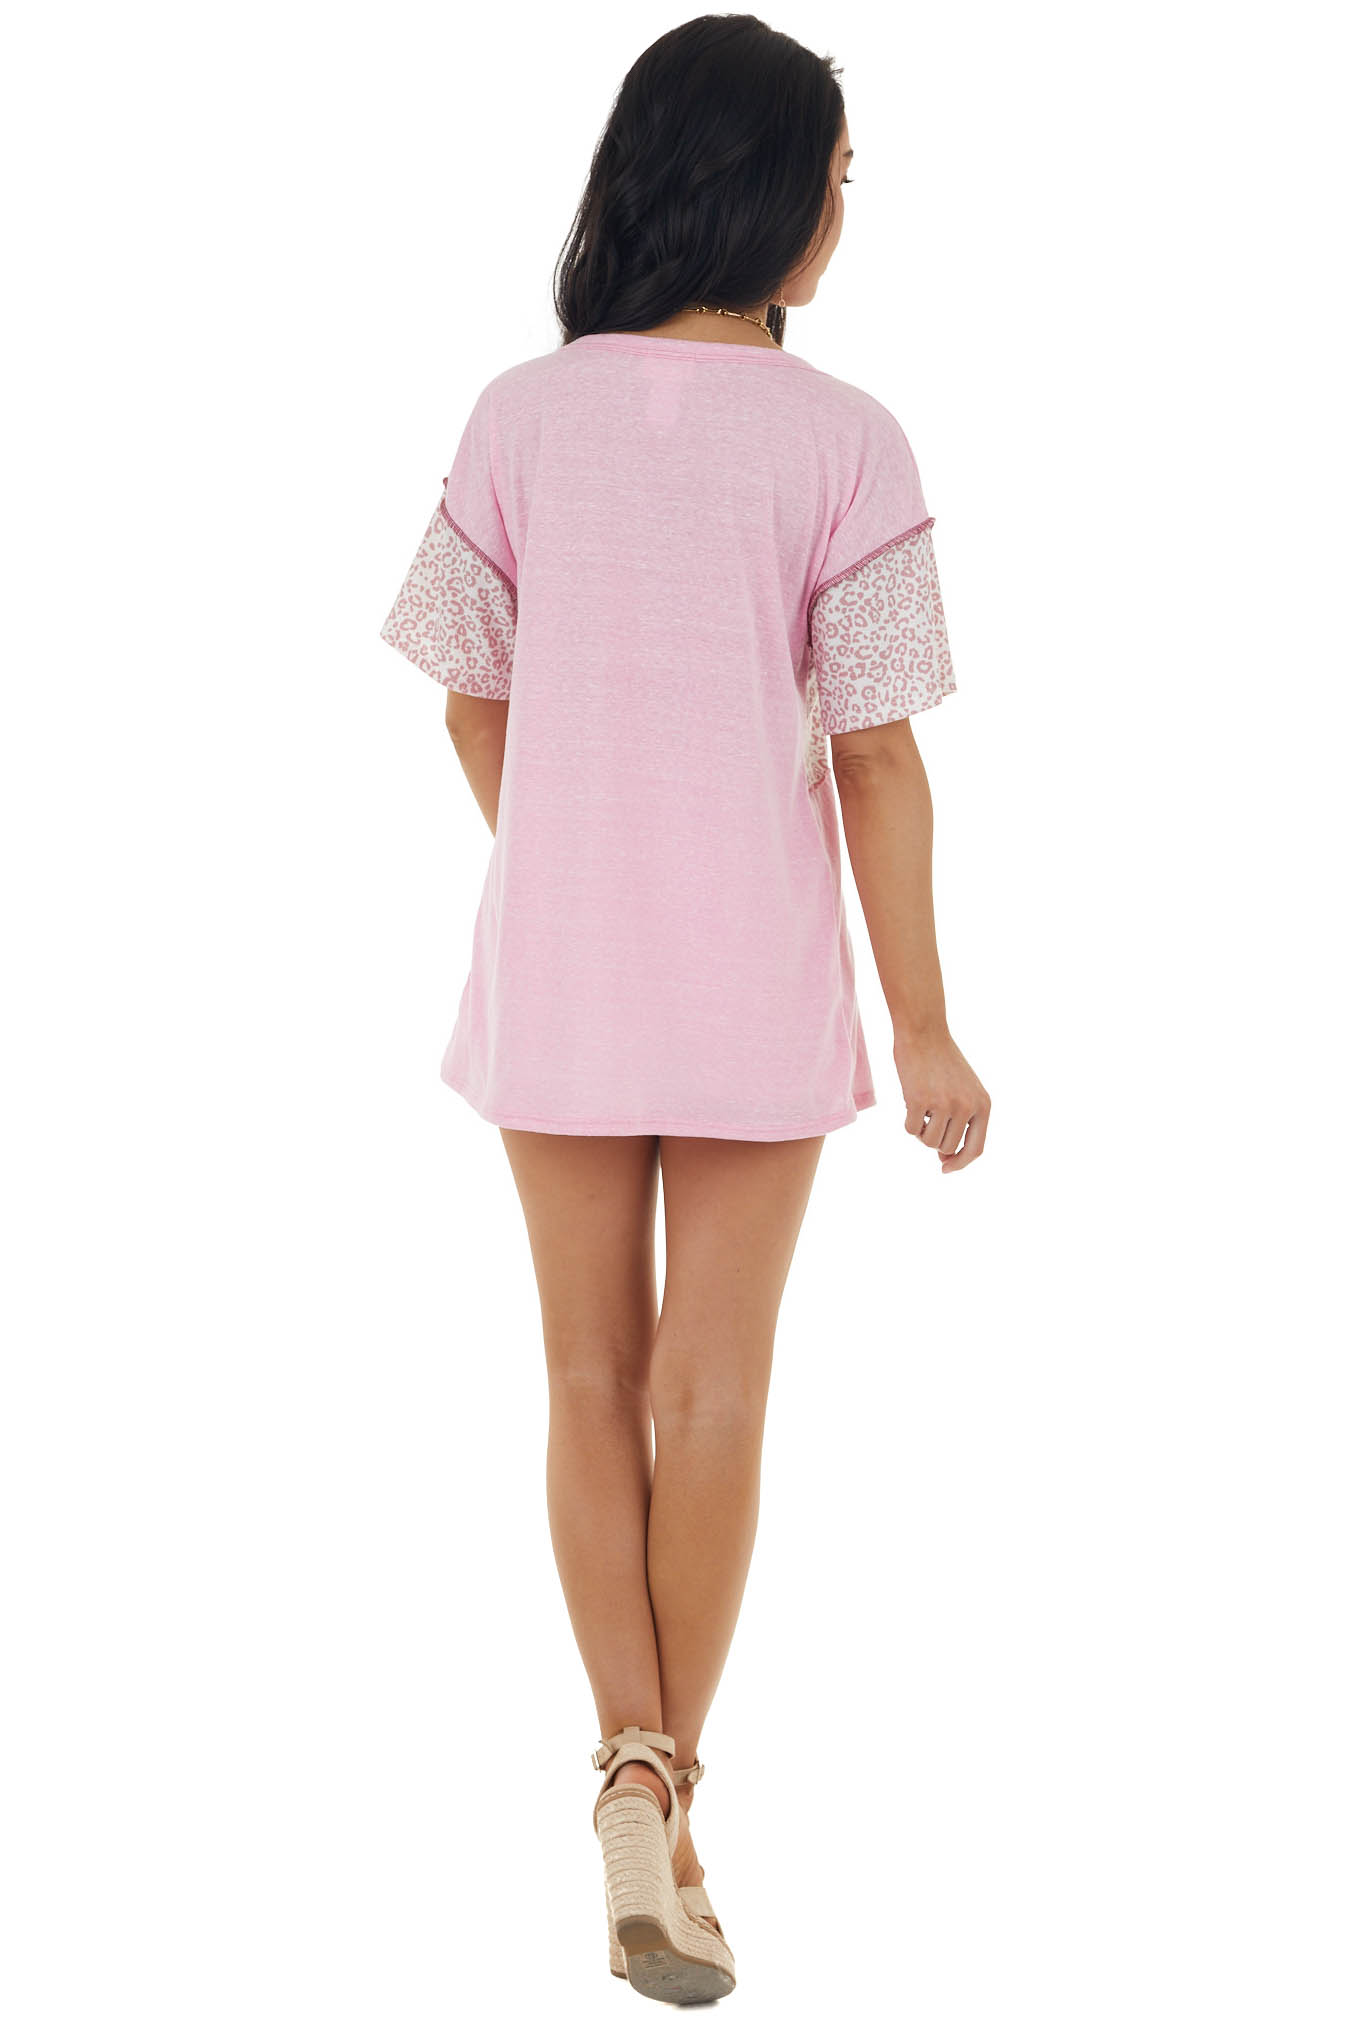 Carnation Pink Leopard Print Knit Top with Outseam Details